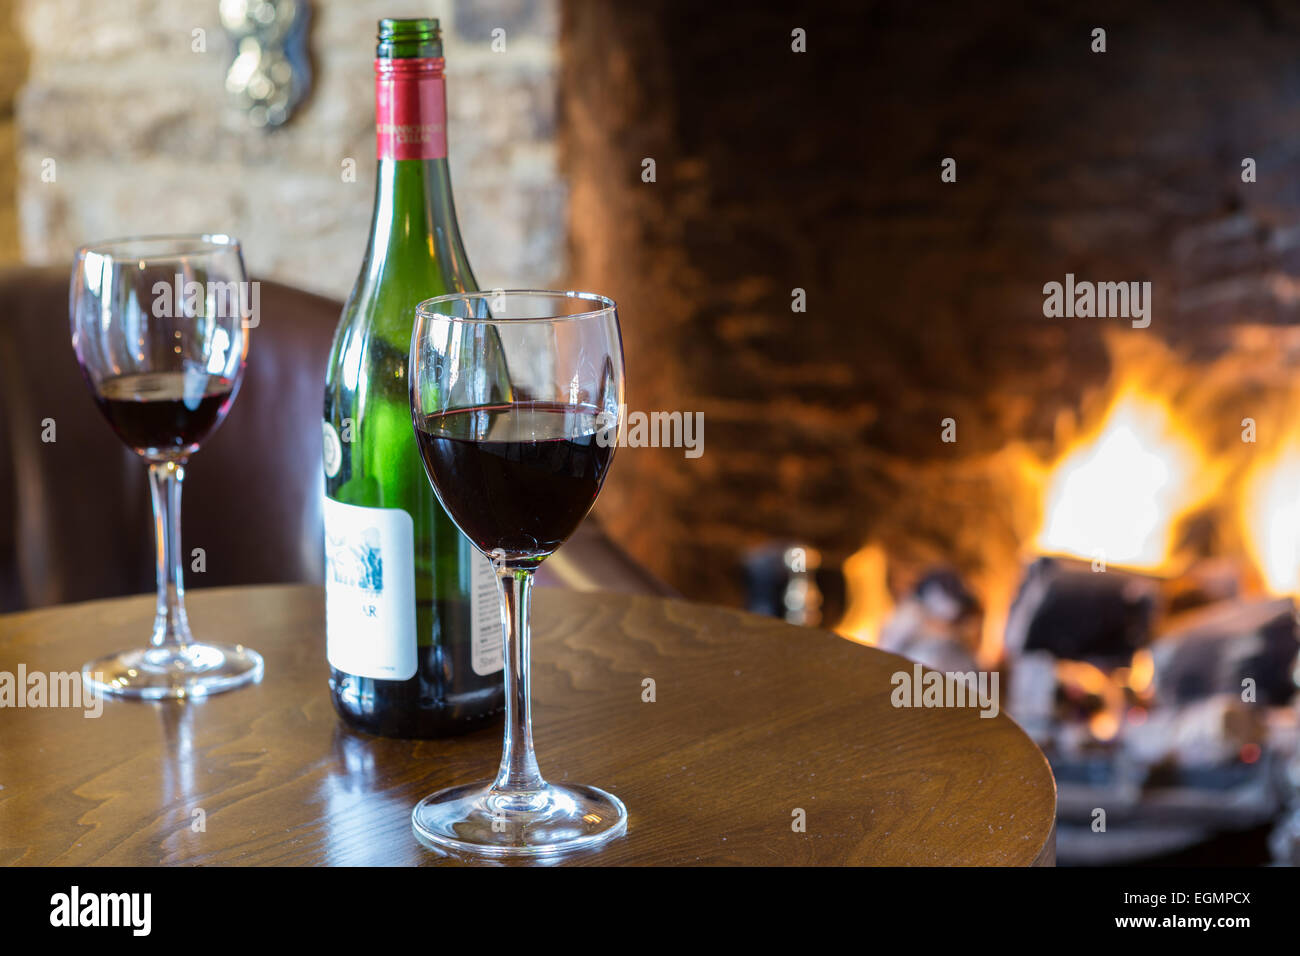 Bottle of red wine with two glasses in cosy pub - Stock Image